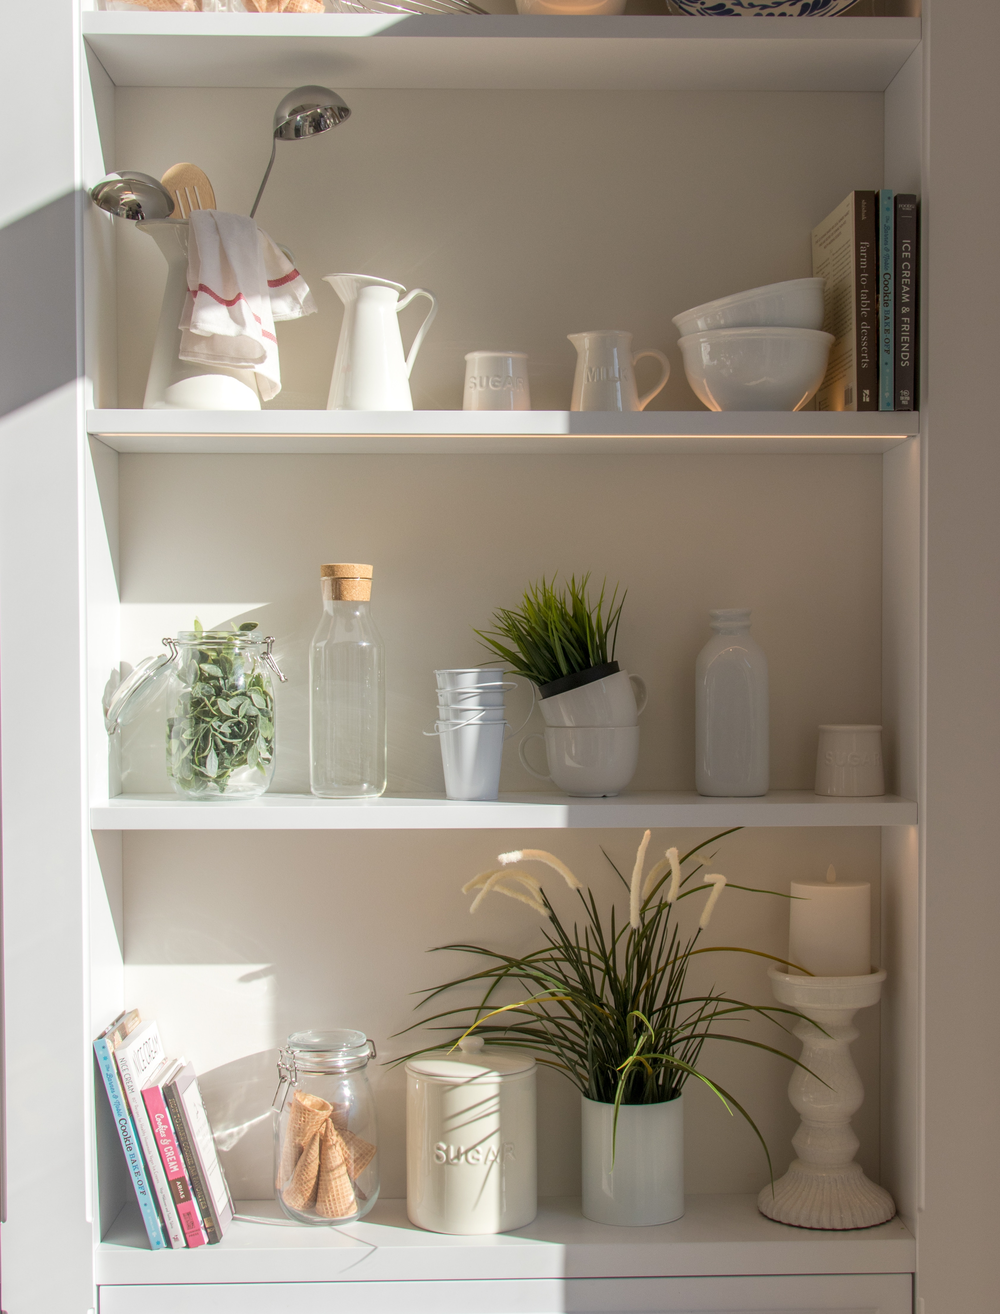 3. sustainable systems - Now that your space is organized we can get an overall view of what furnishings and systems you'll need to finalize your goals and keep things in order.Relish in the joy of having a clean, orderly space!